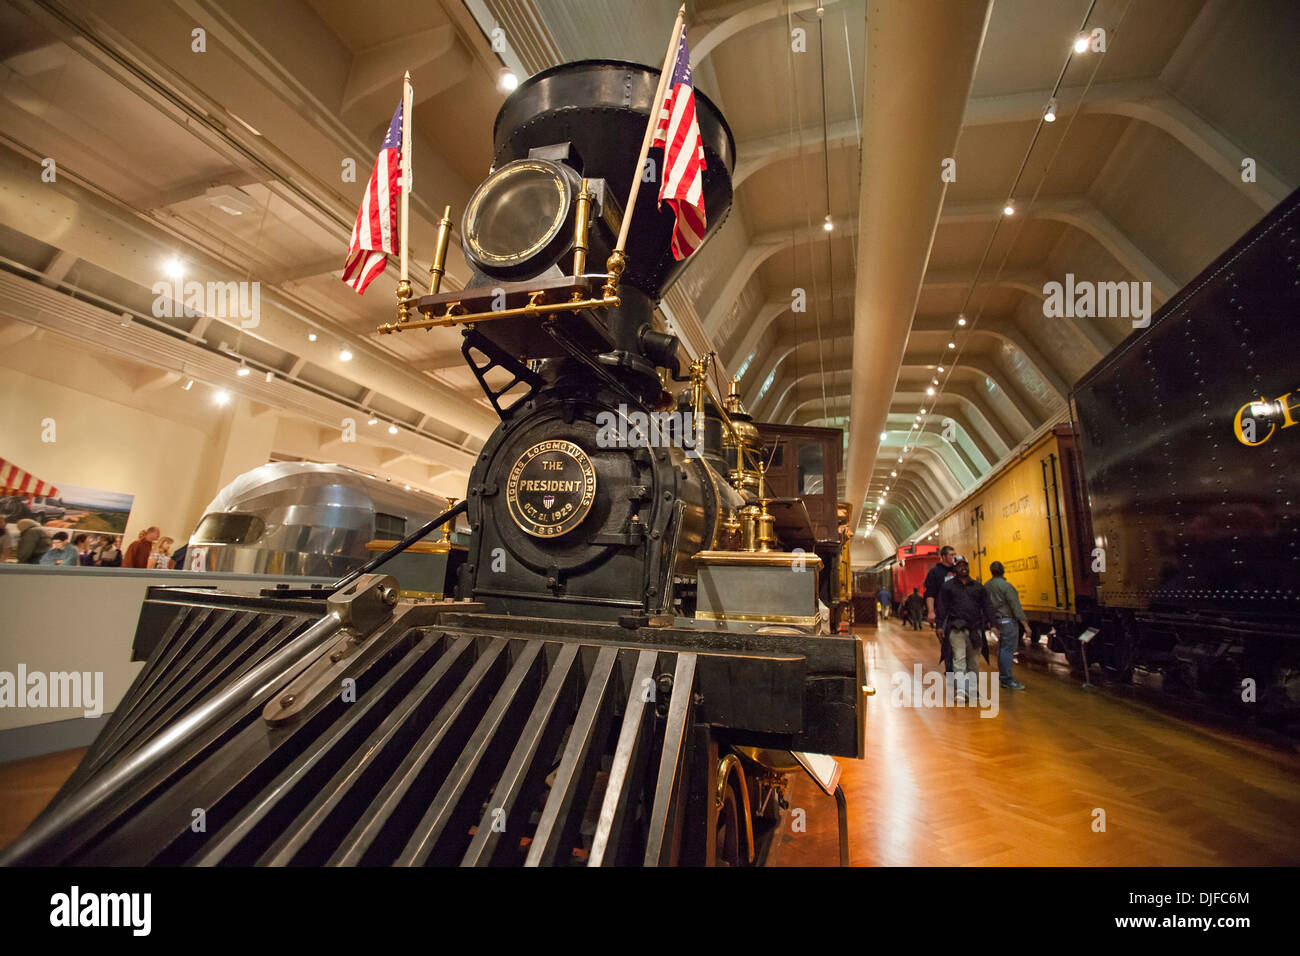 An 1858 Rogers wood-burning locomotive on display at the Henry Ford Museum. - Stock Image